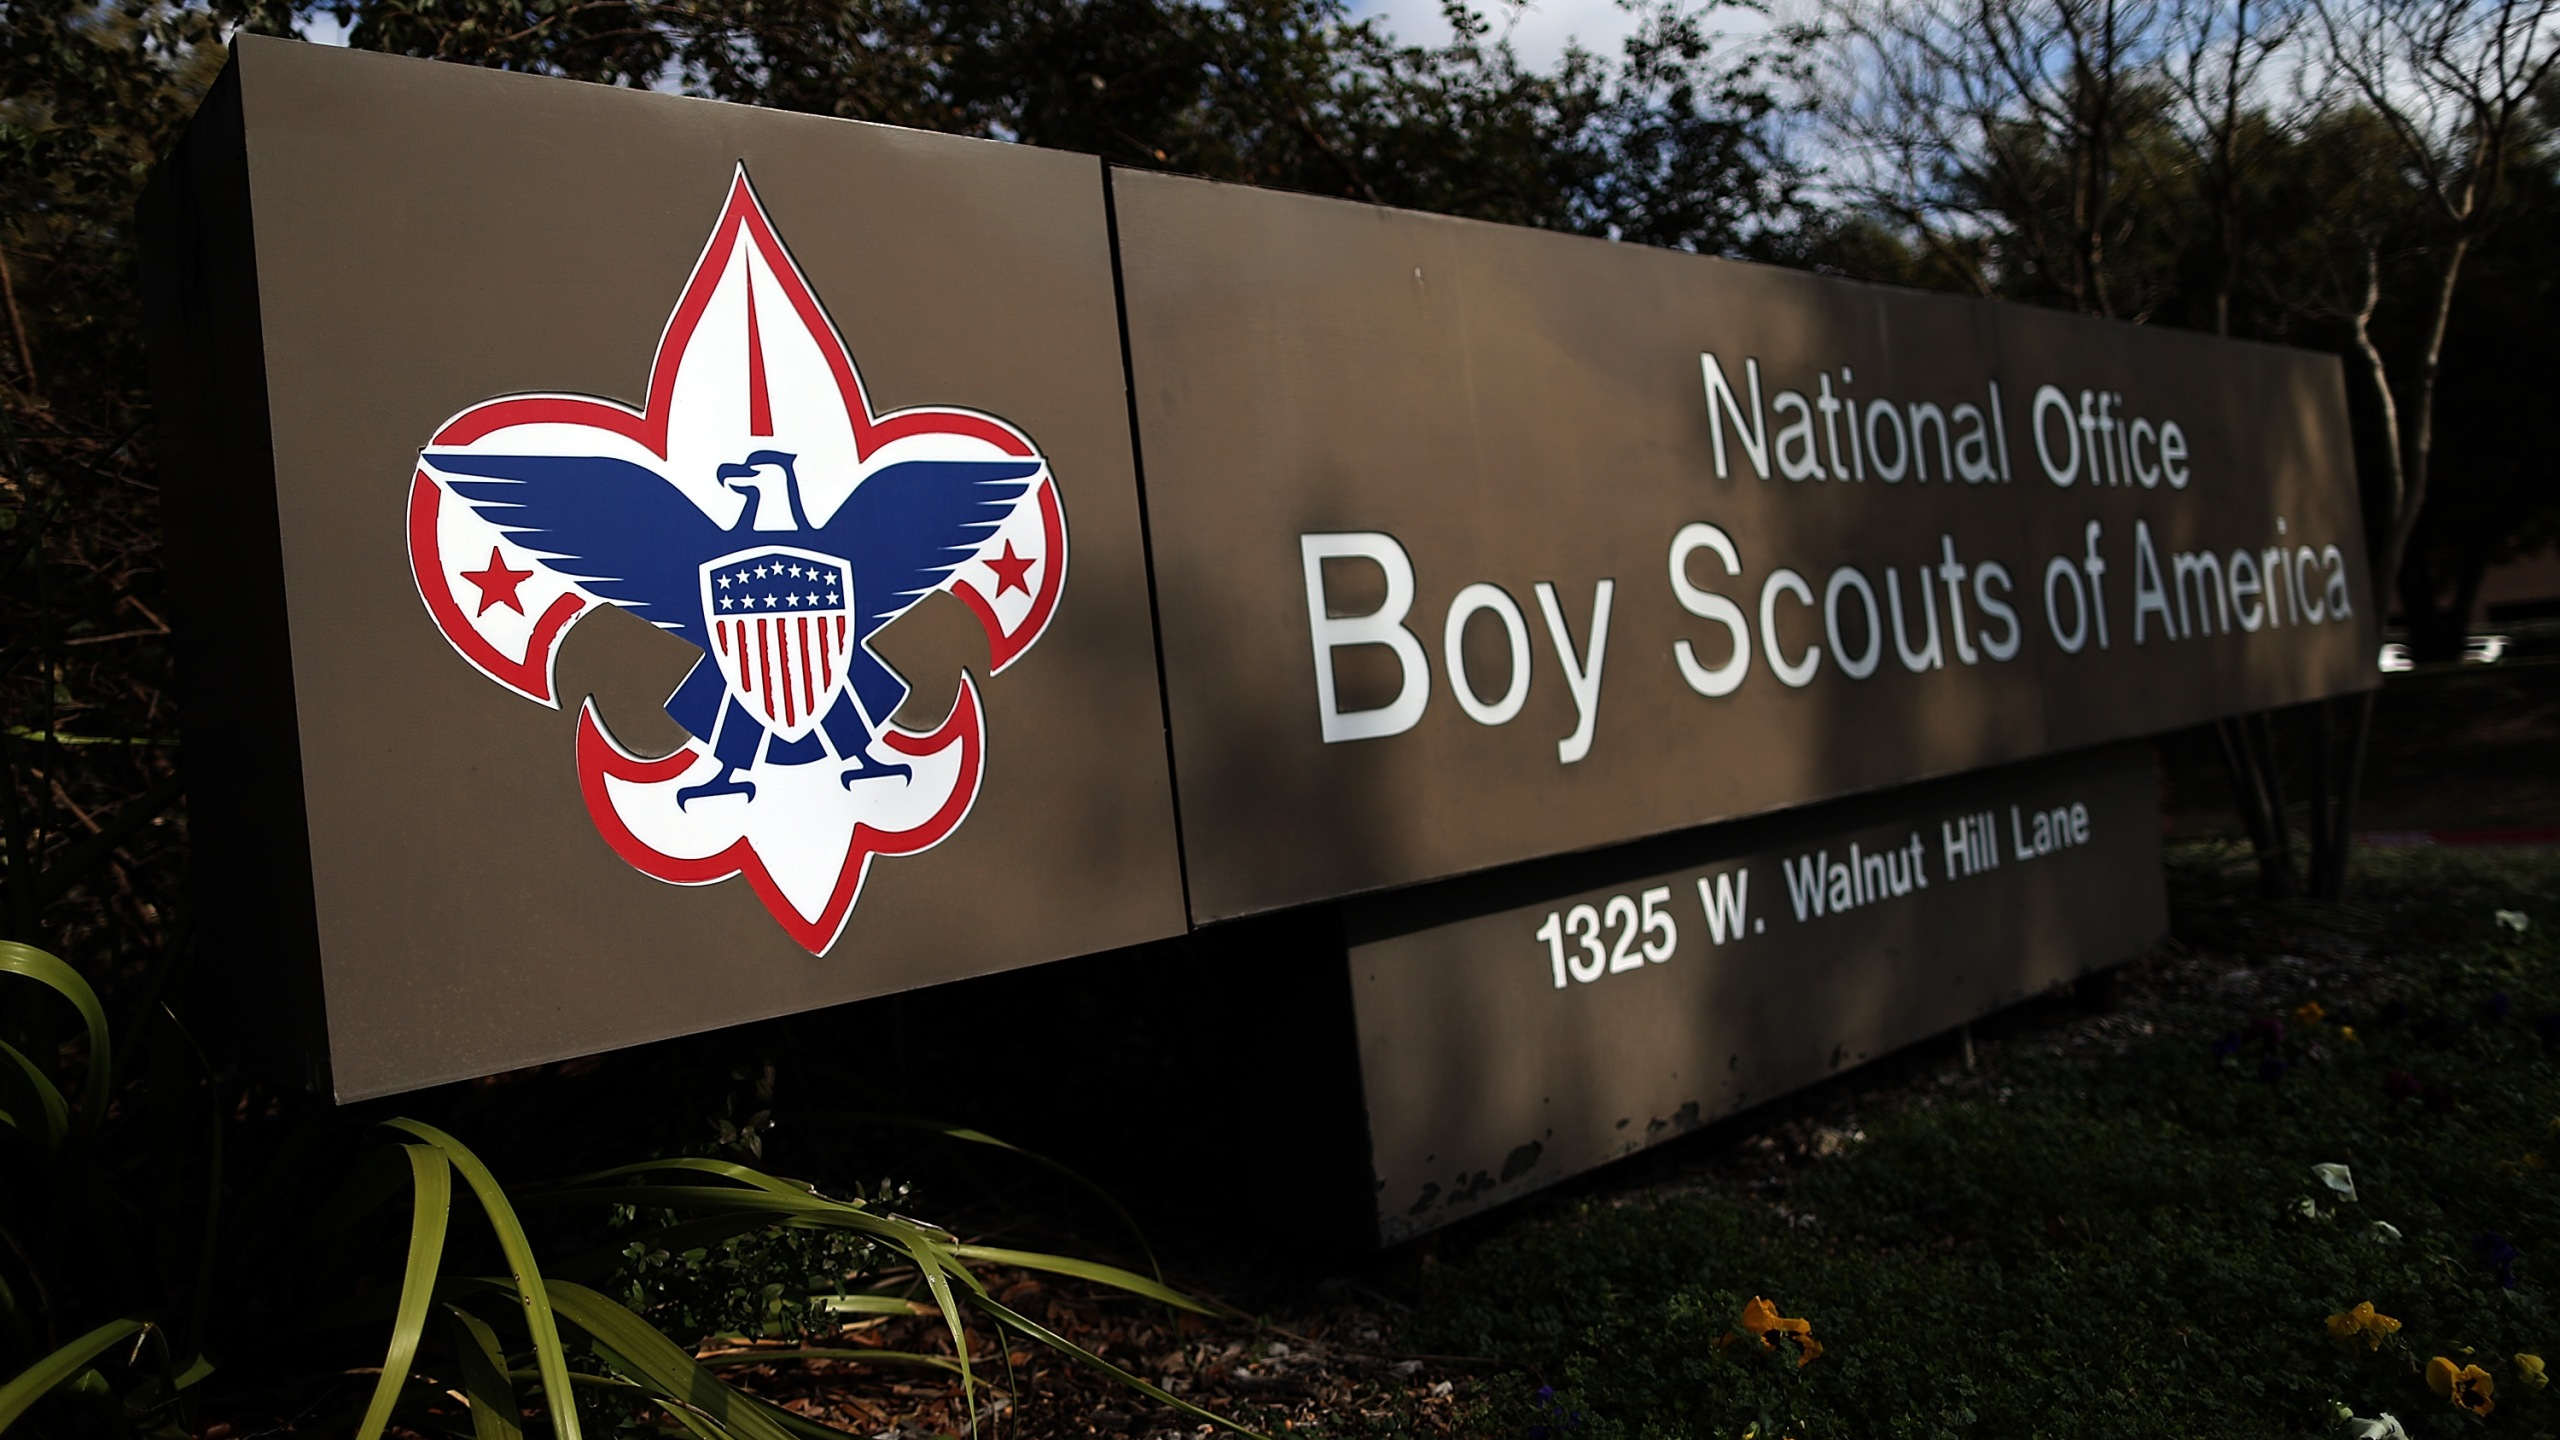 A sign for the National Office outside the Boy Scouts of America Headquarters on February 4, 2013 in Irving, Texas. (Credit: Tom Pennington/Getty Images)